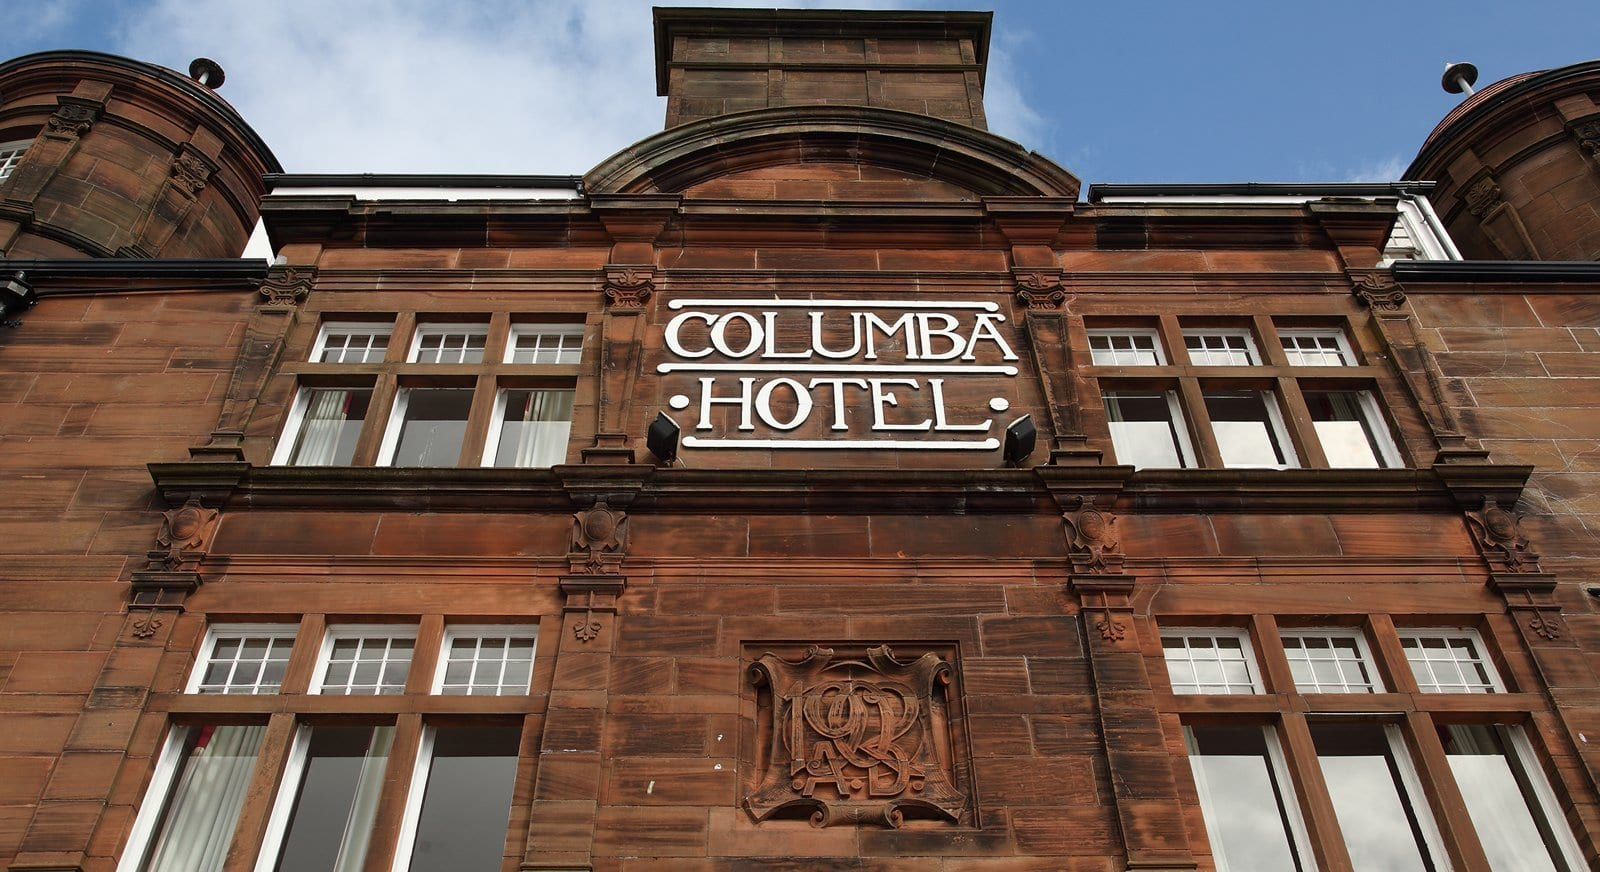 Columbia Hotel is one of a few hotels in Oban